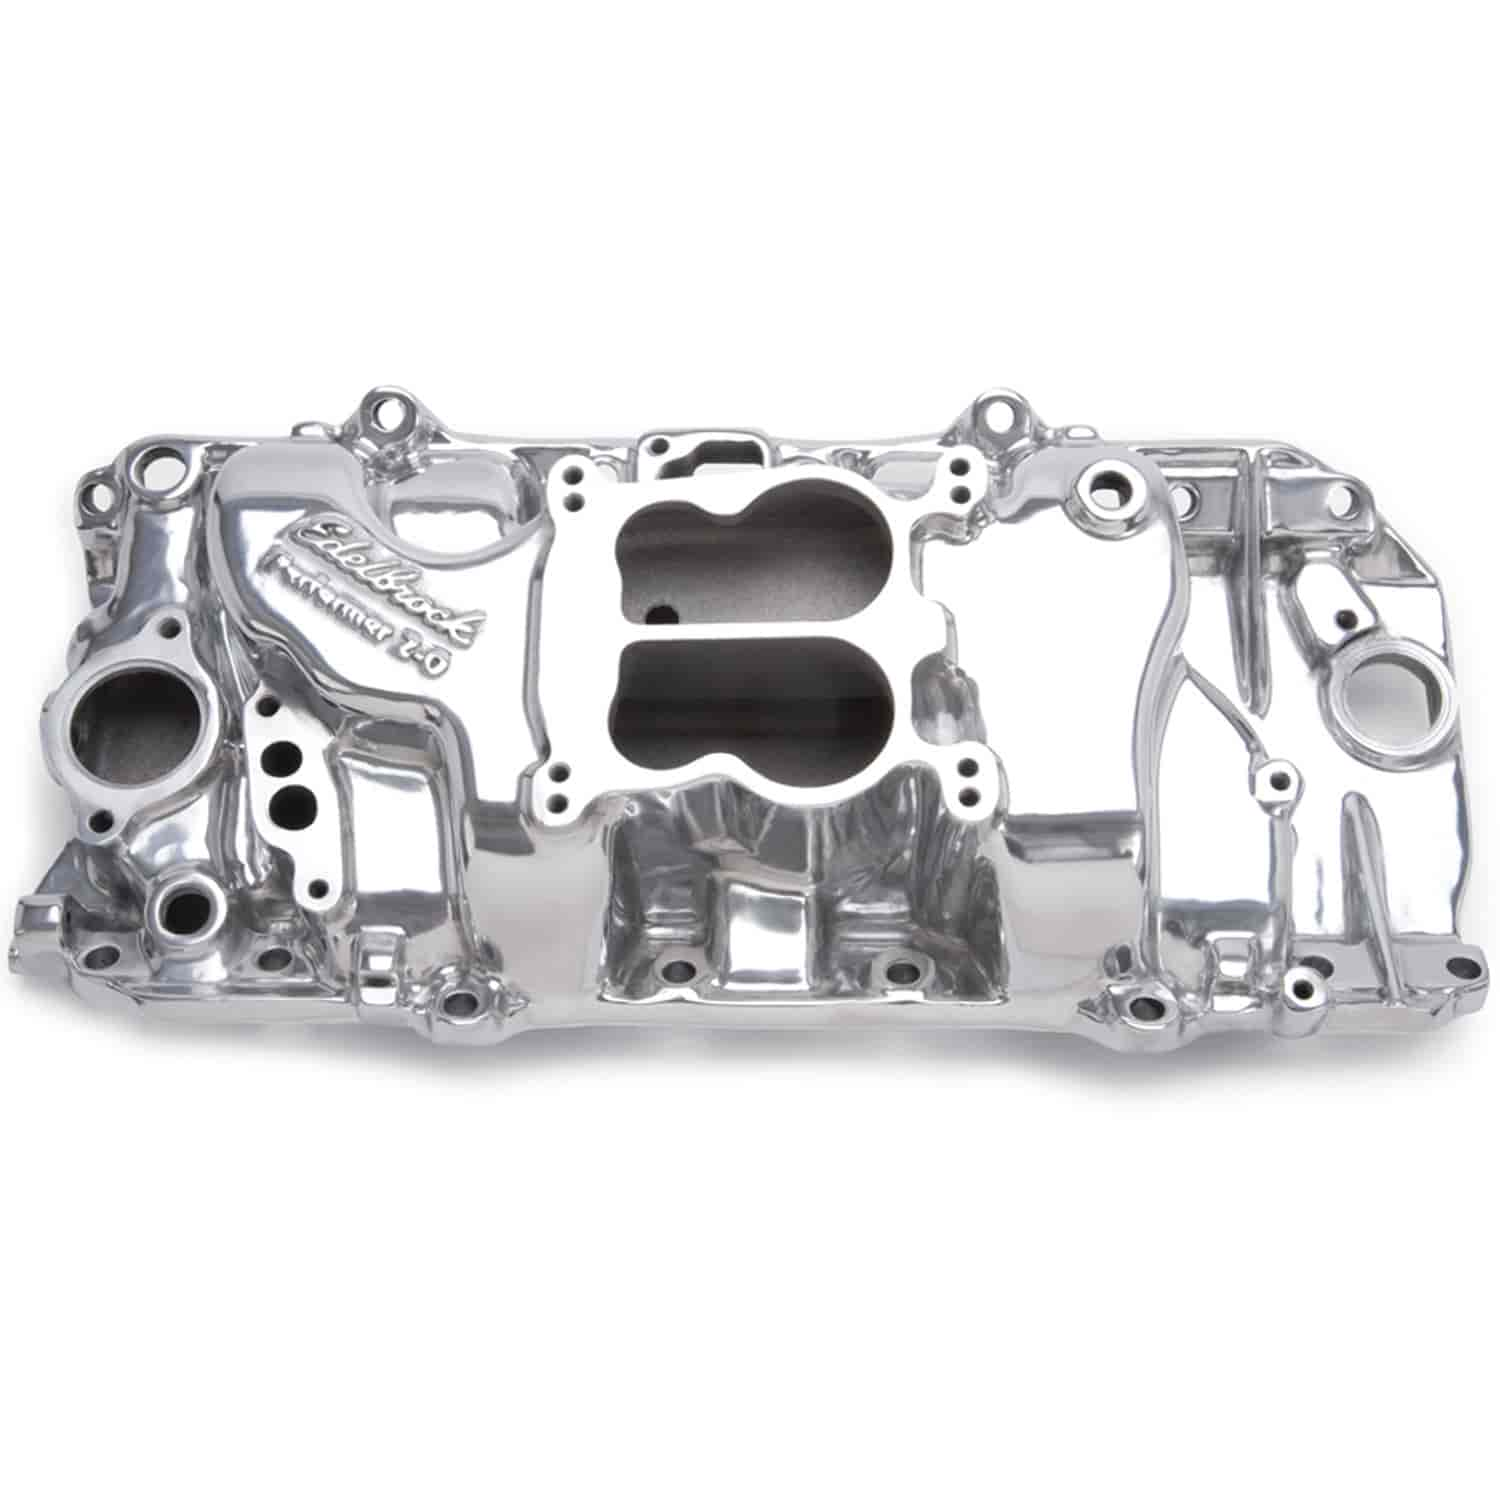 Edelbrock 37611 - Edelbrock Performer Intake Manifolds for Chevy